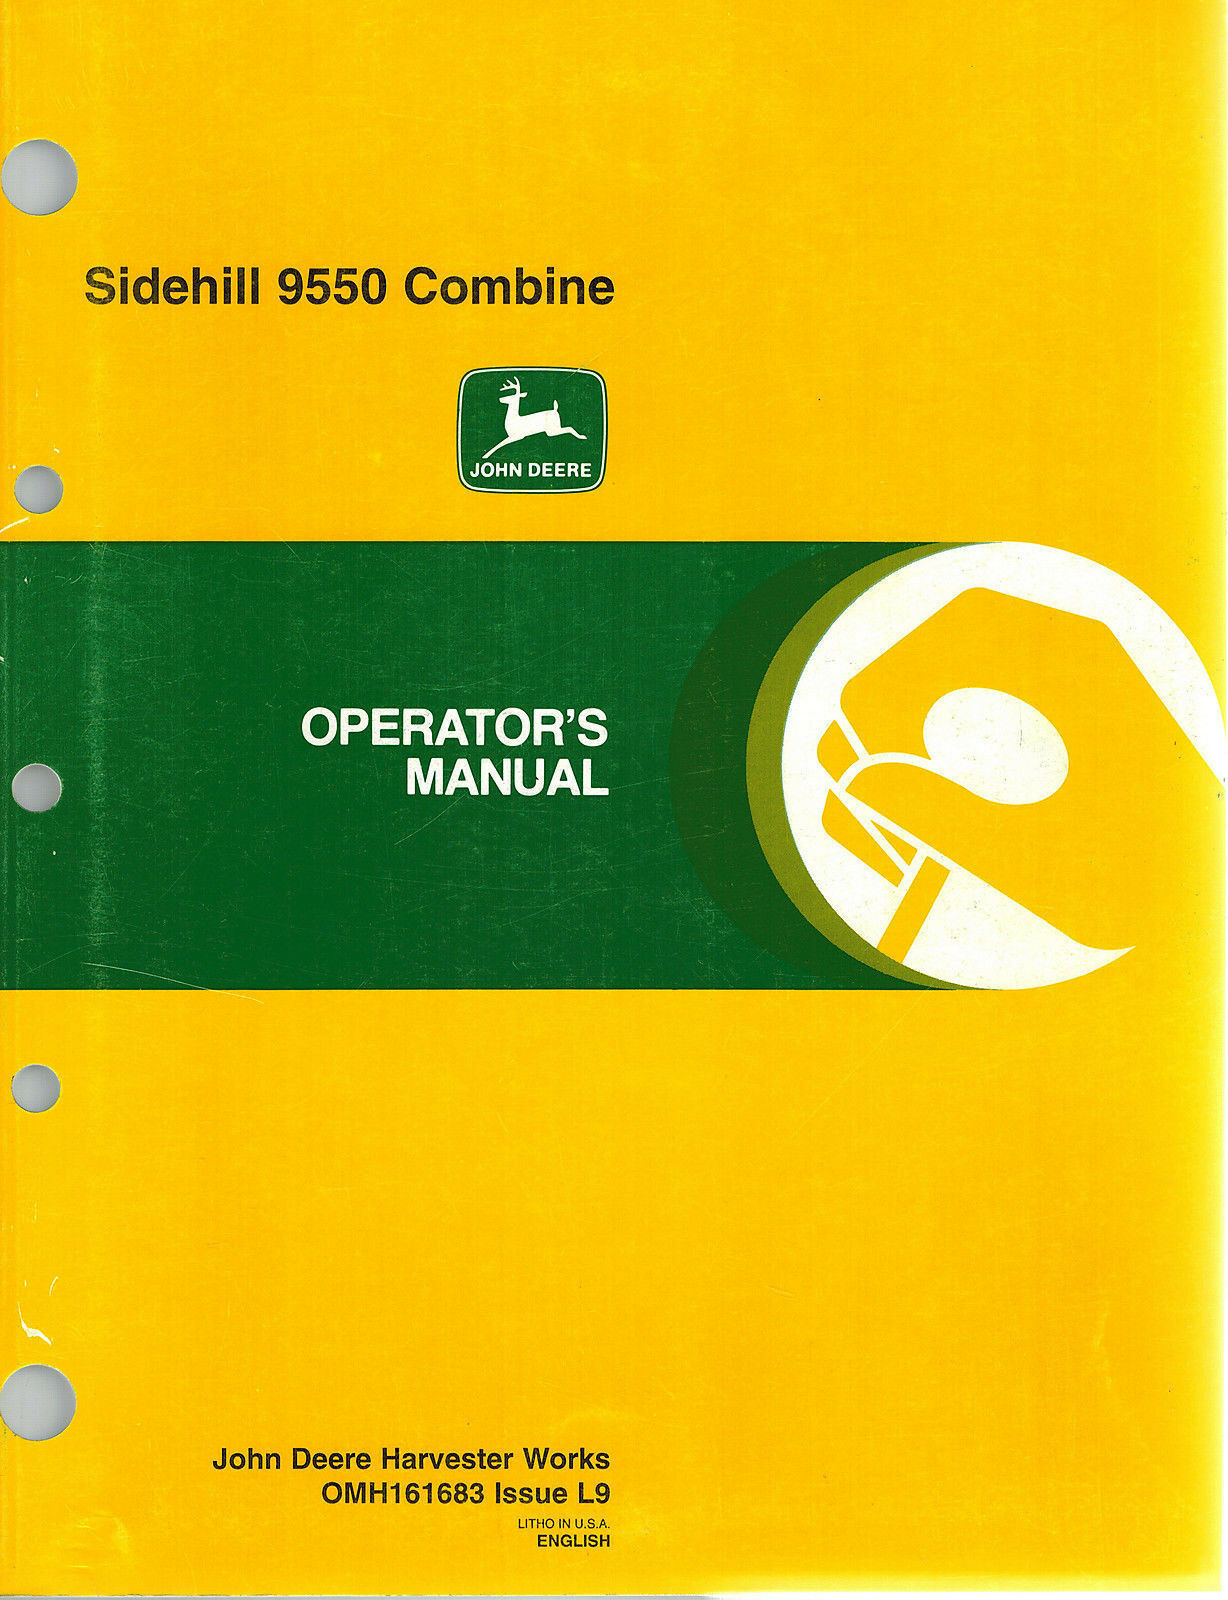 JOHN DEERE 9550 SIDEHILL COMBINE OPERATOR'S MANUAL jd 1 of 4Only 1  available ...